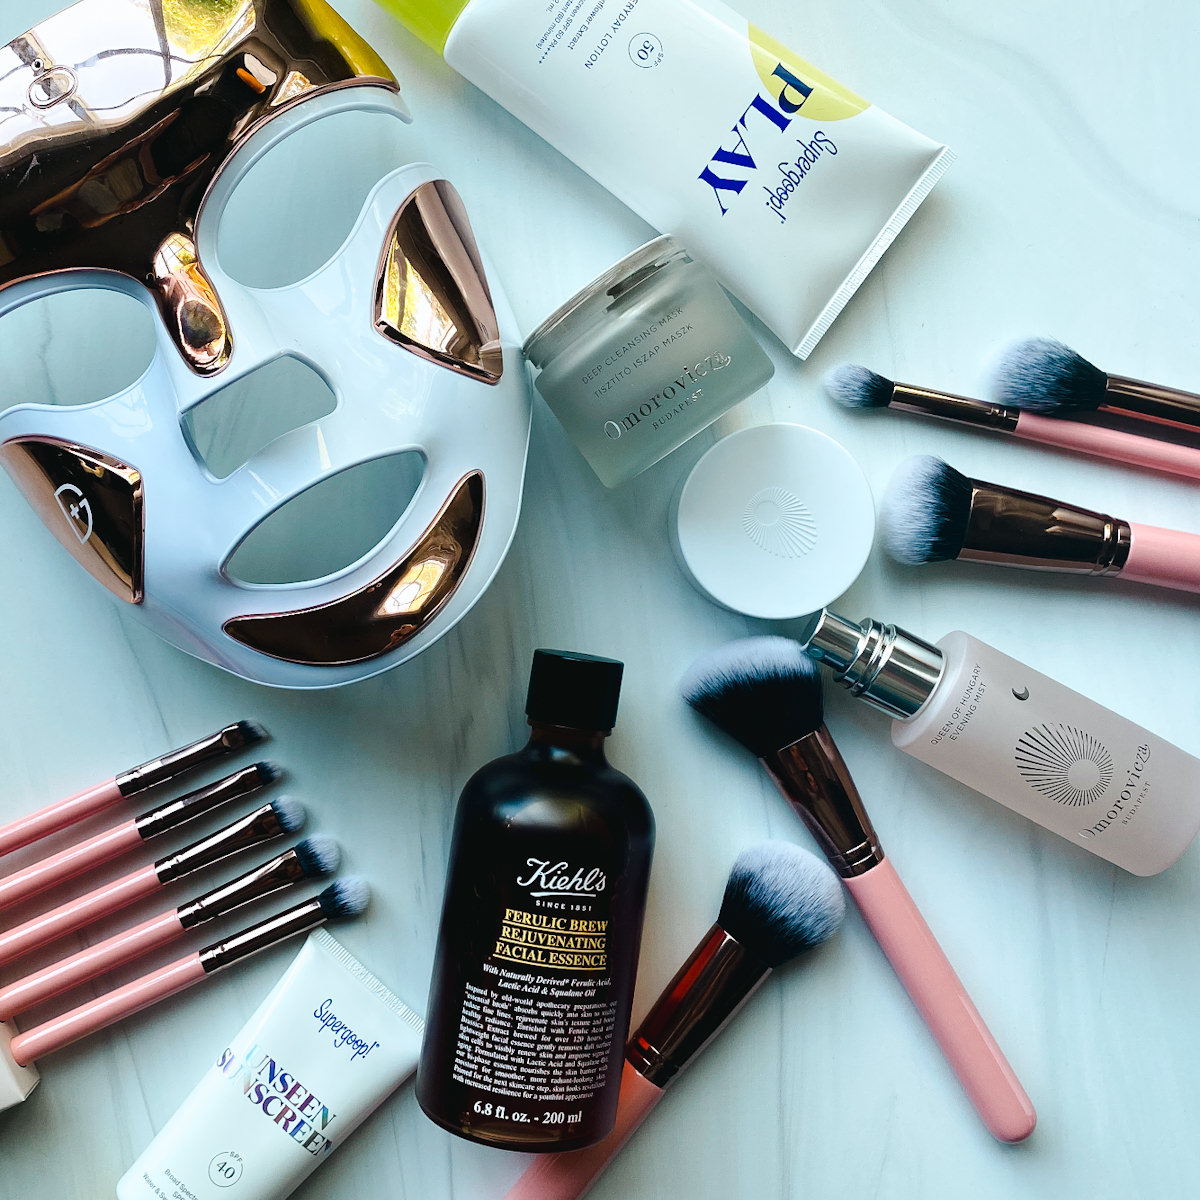 Nordstrom Anniversary Sale by popular Monterey beauty blog, Haute Beauty Guide: image of a light therapy mask, Supergoop! Play sunscreen, makeup brushes, Omorovicza deep cleaning mask, Omorovicza evening mist, and Kiehl's ferulic rejuvenating facial essence.